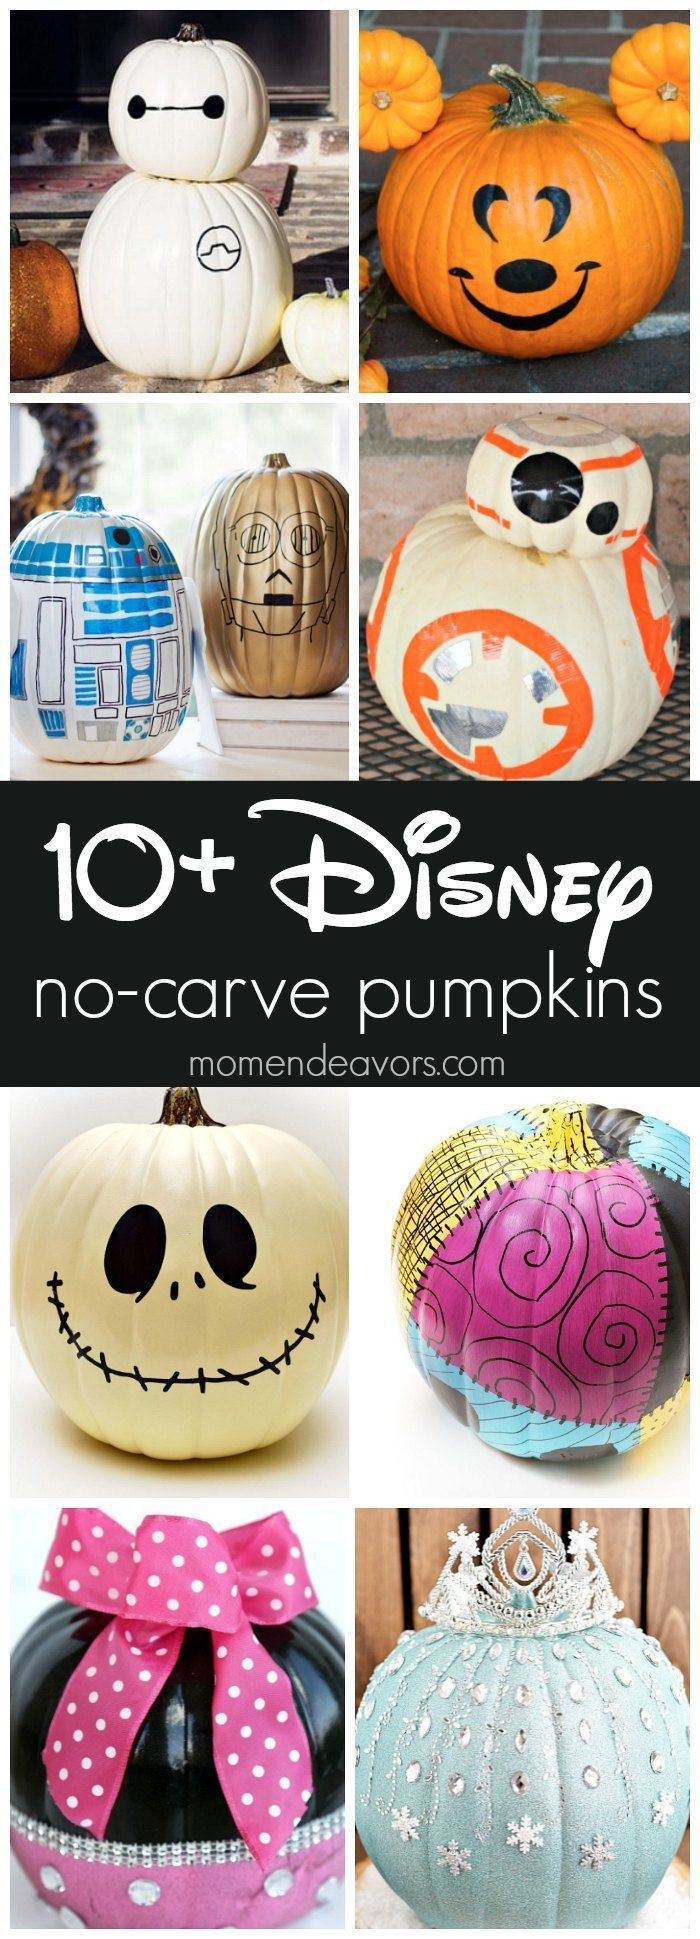 10+ Best No-Carve Disney Halloween Pumpkins